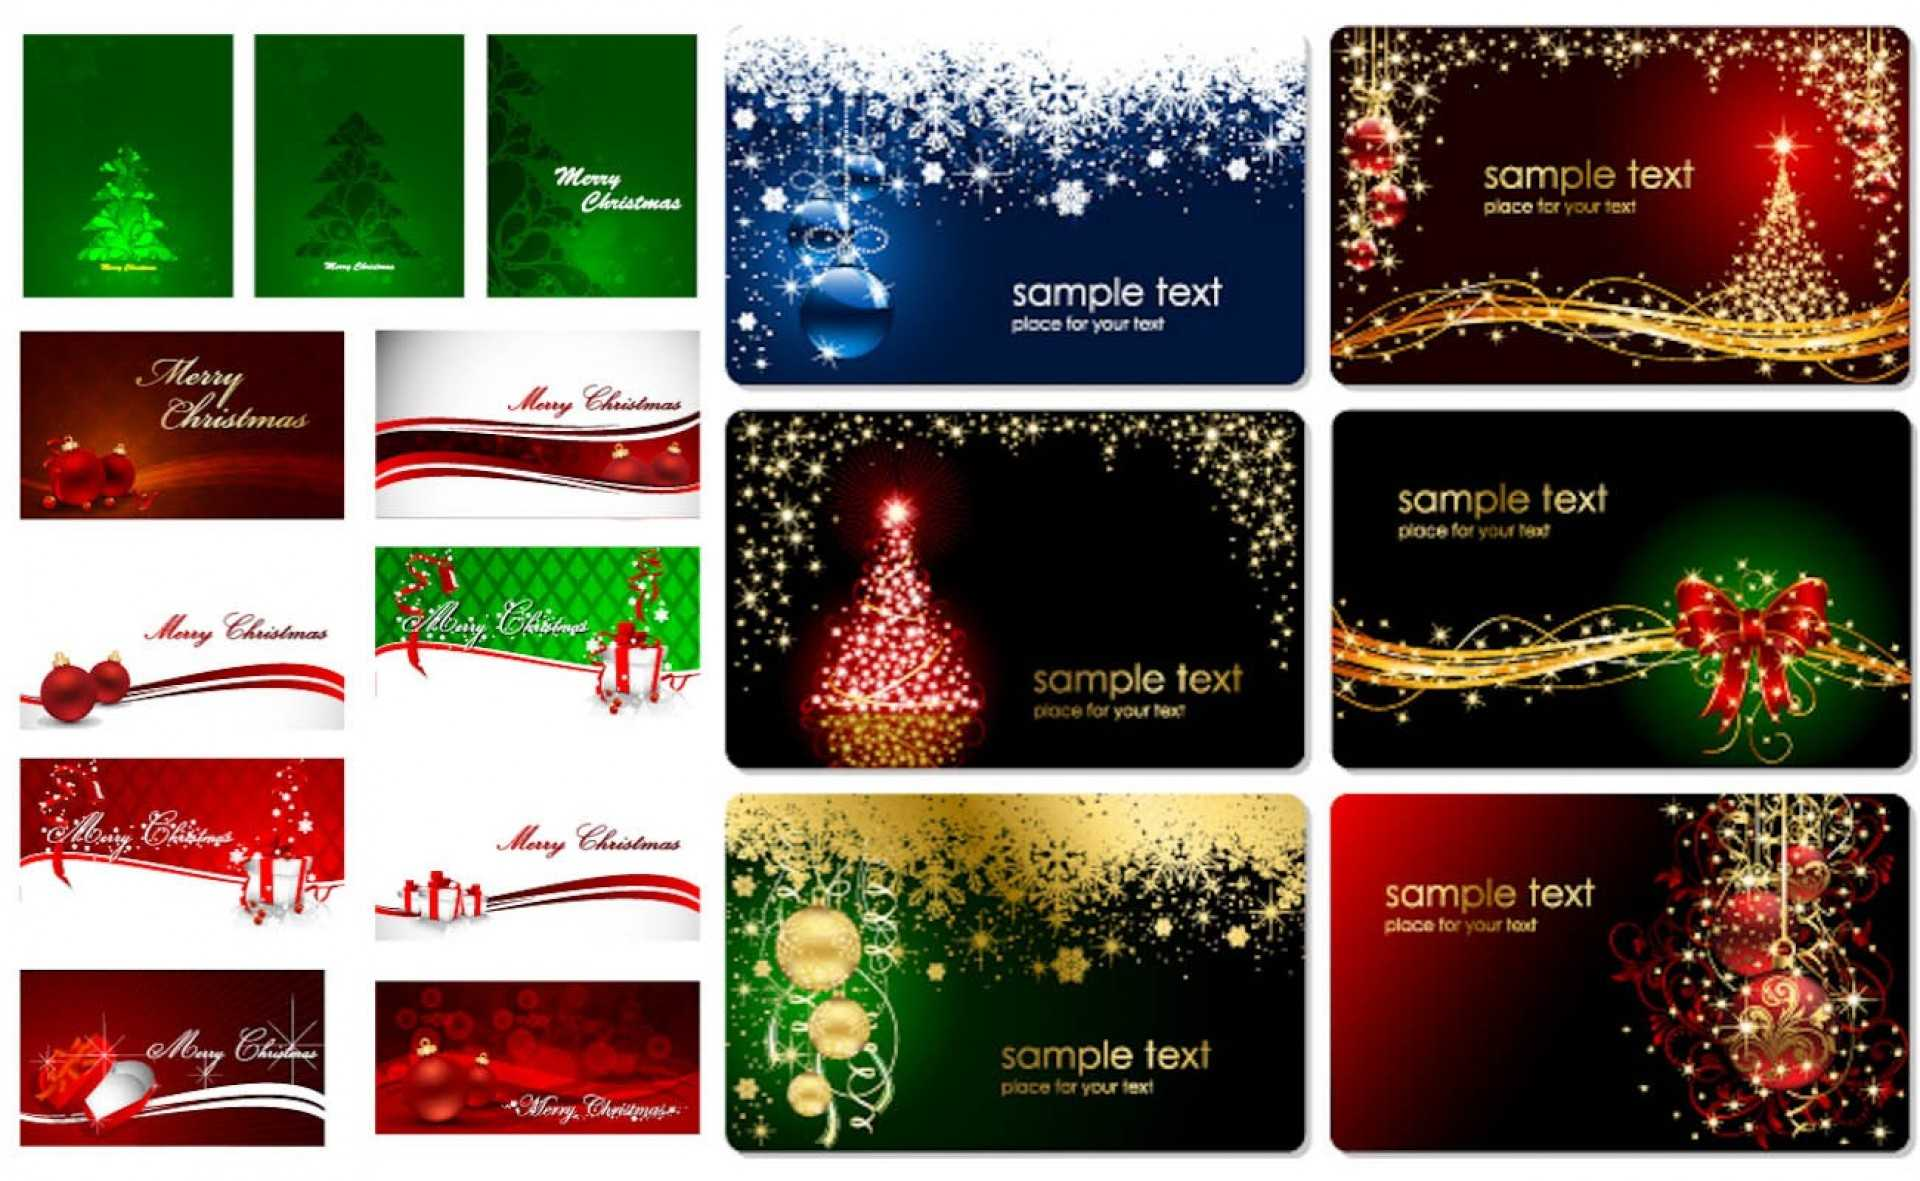 Sensational Christmas Card Templates For Photoshop Template With Free Christmas Card Templates For Photoshop